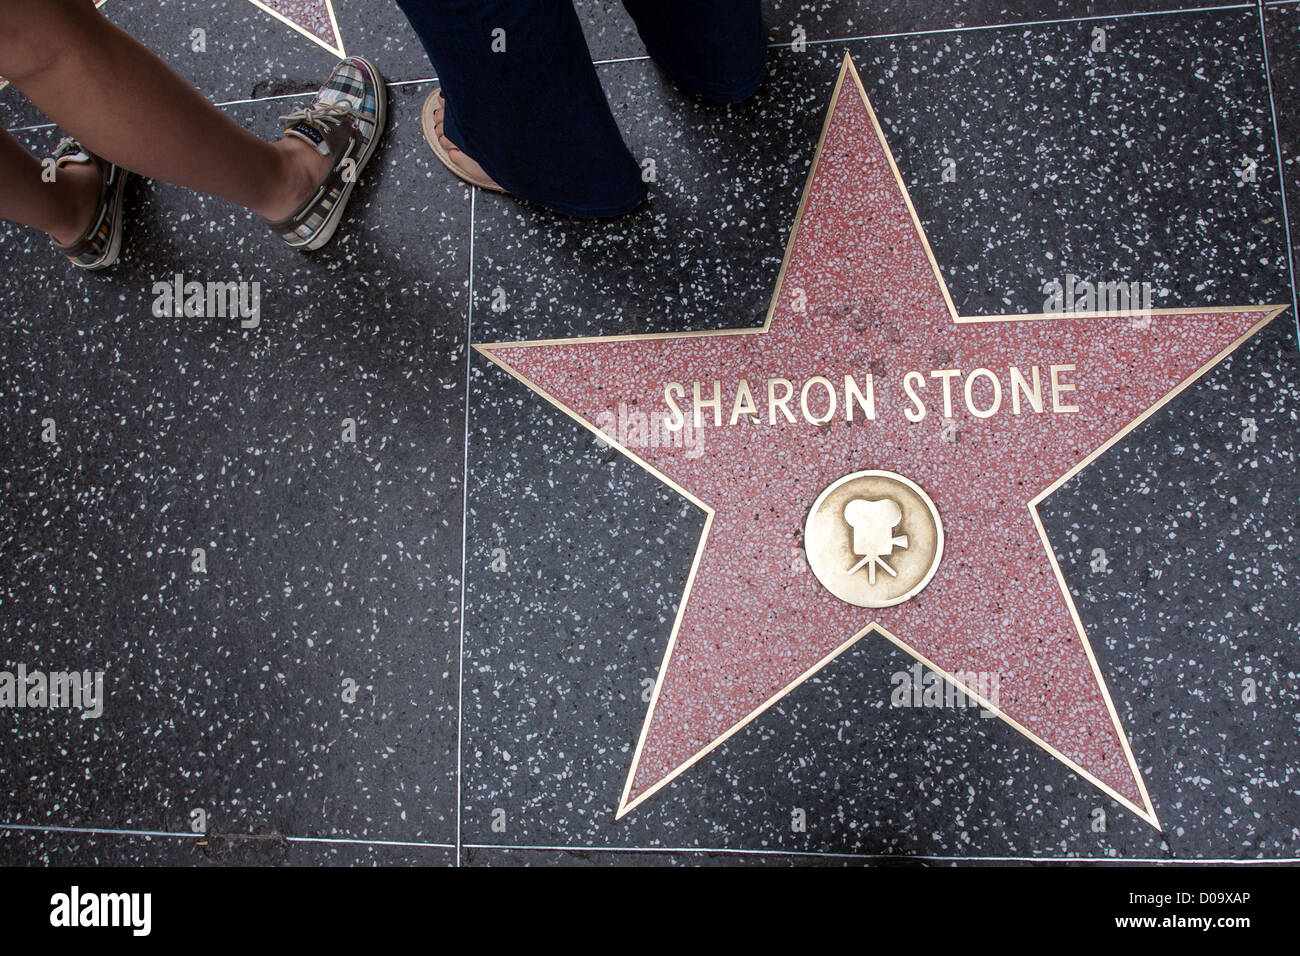 hollywood walk of fame star stock photos hollywood walk of fame star stock images alamy. Black Bedroom Furniture Sets. Home Design Ideas